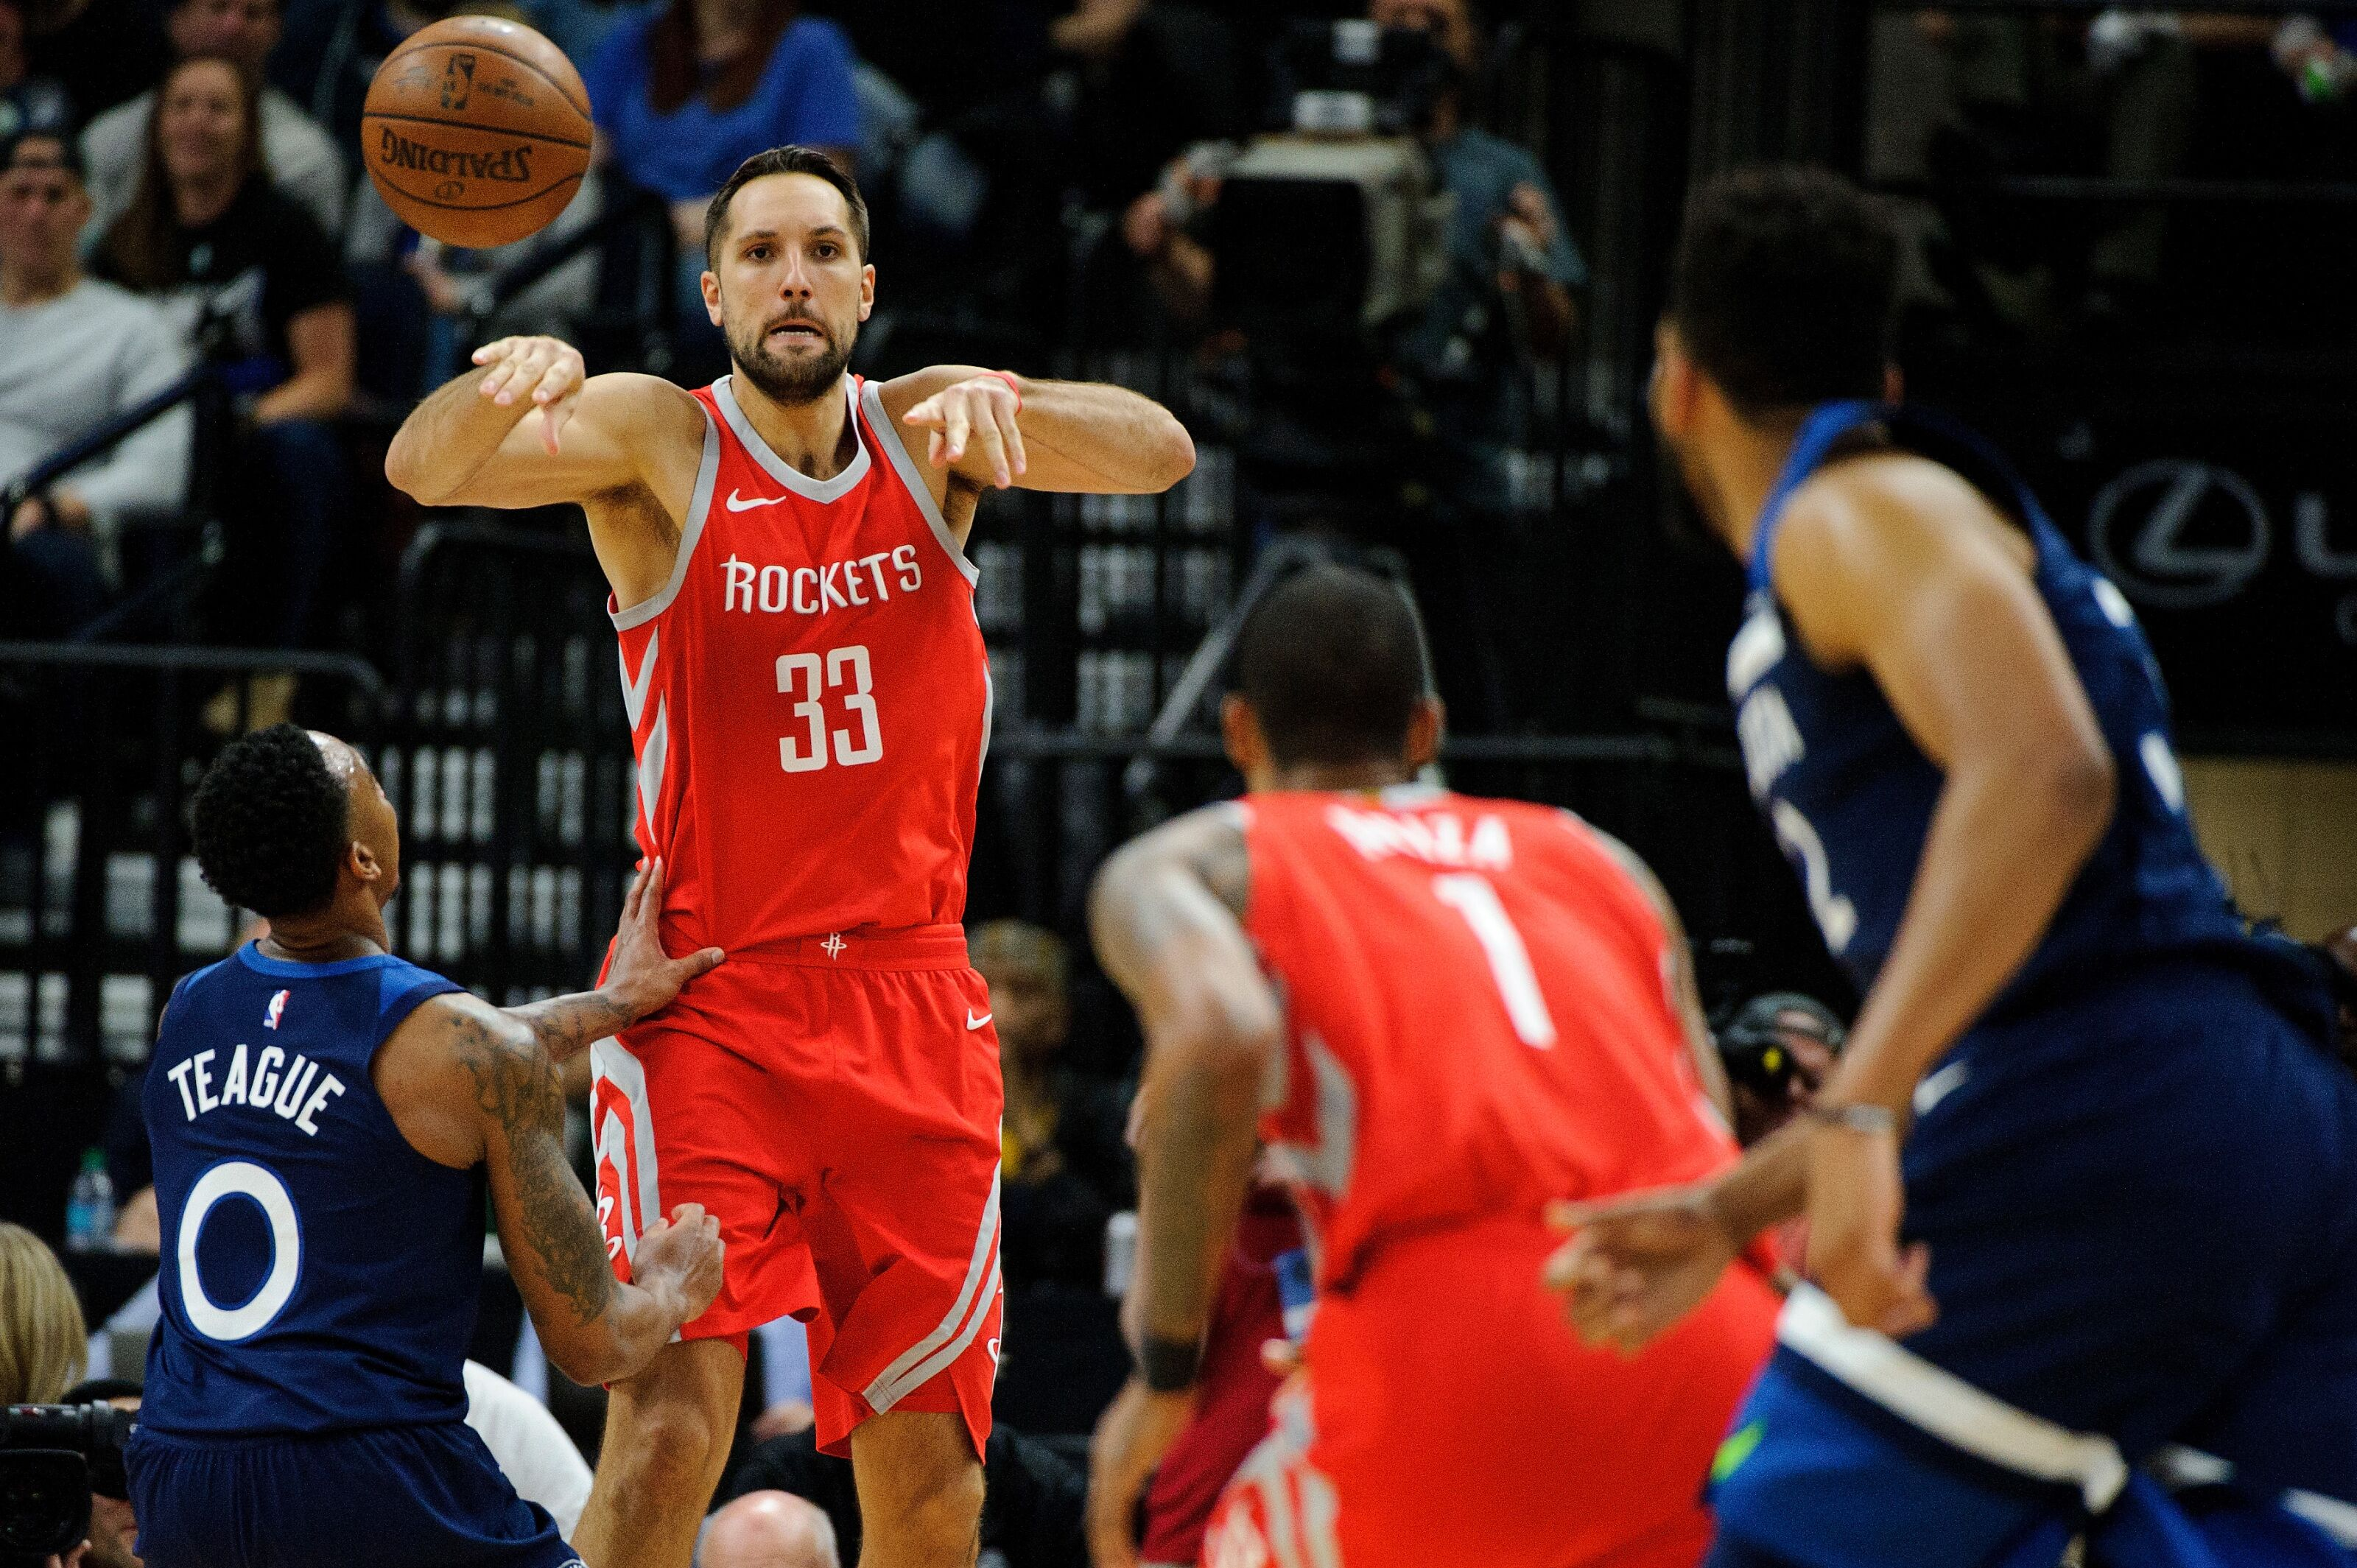 c4b57d4eb Houston Rockets struggles help the Phoenix Suns - Valley of the Suns